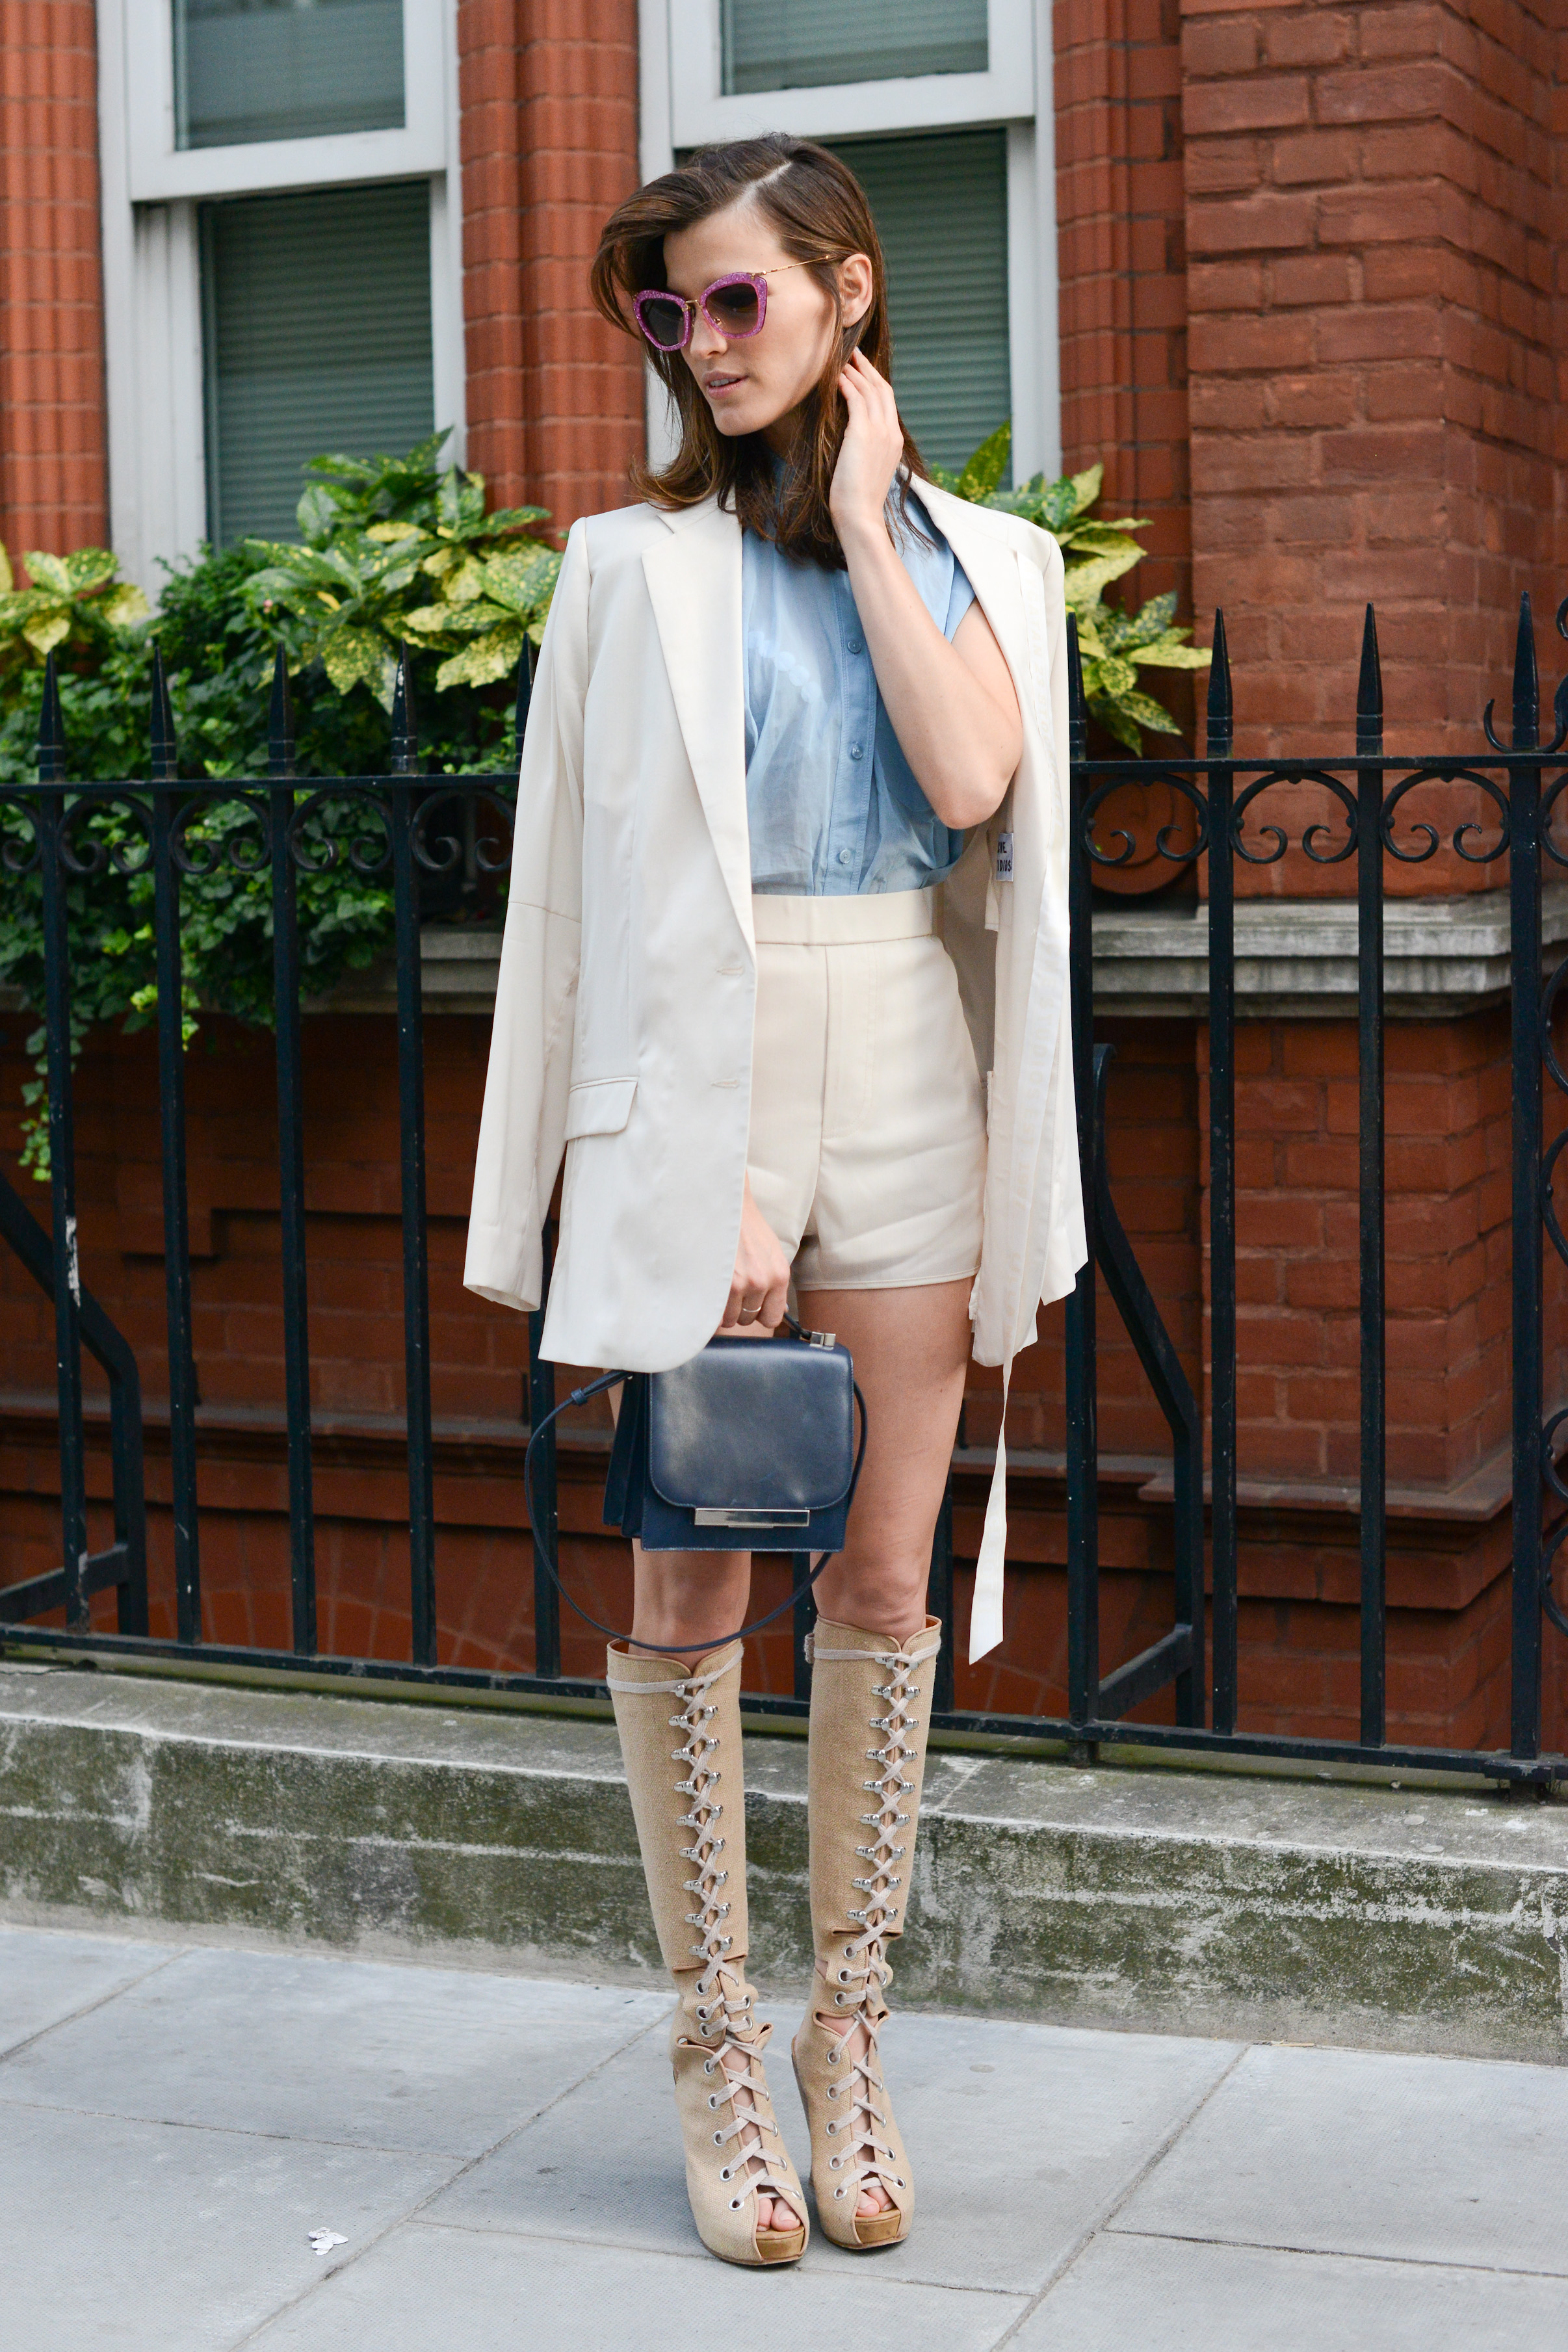 Hanneli Mustaparta donned a sweet ivory-hued short suit ensemble with killer lace-up boots and a navy blue The Row bag.